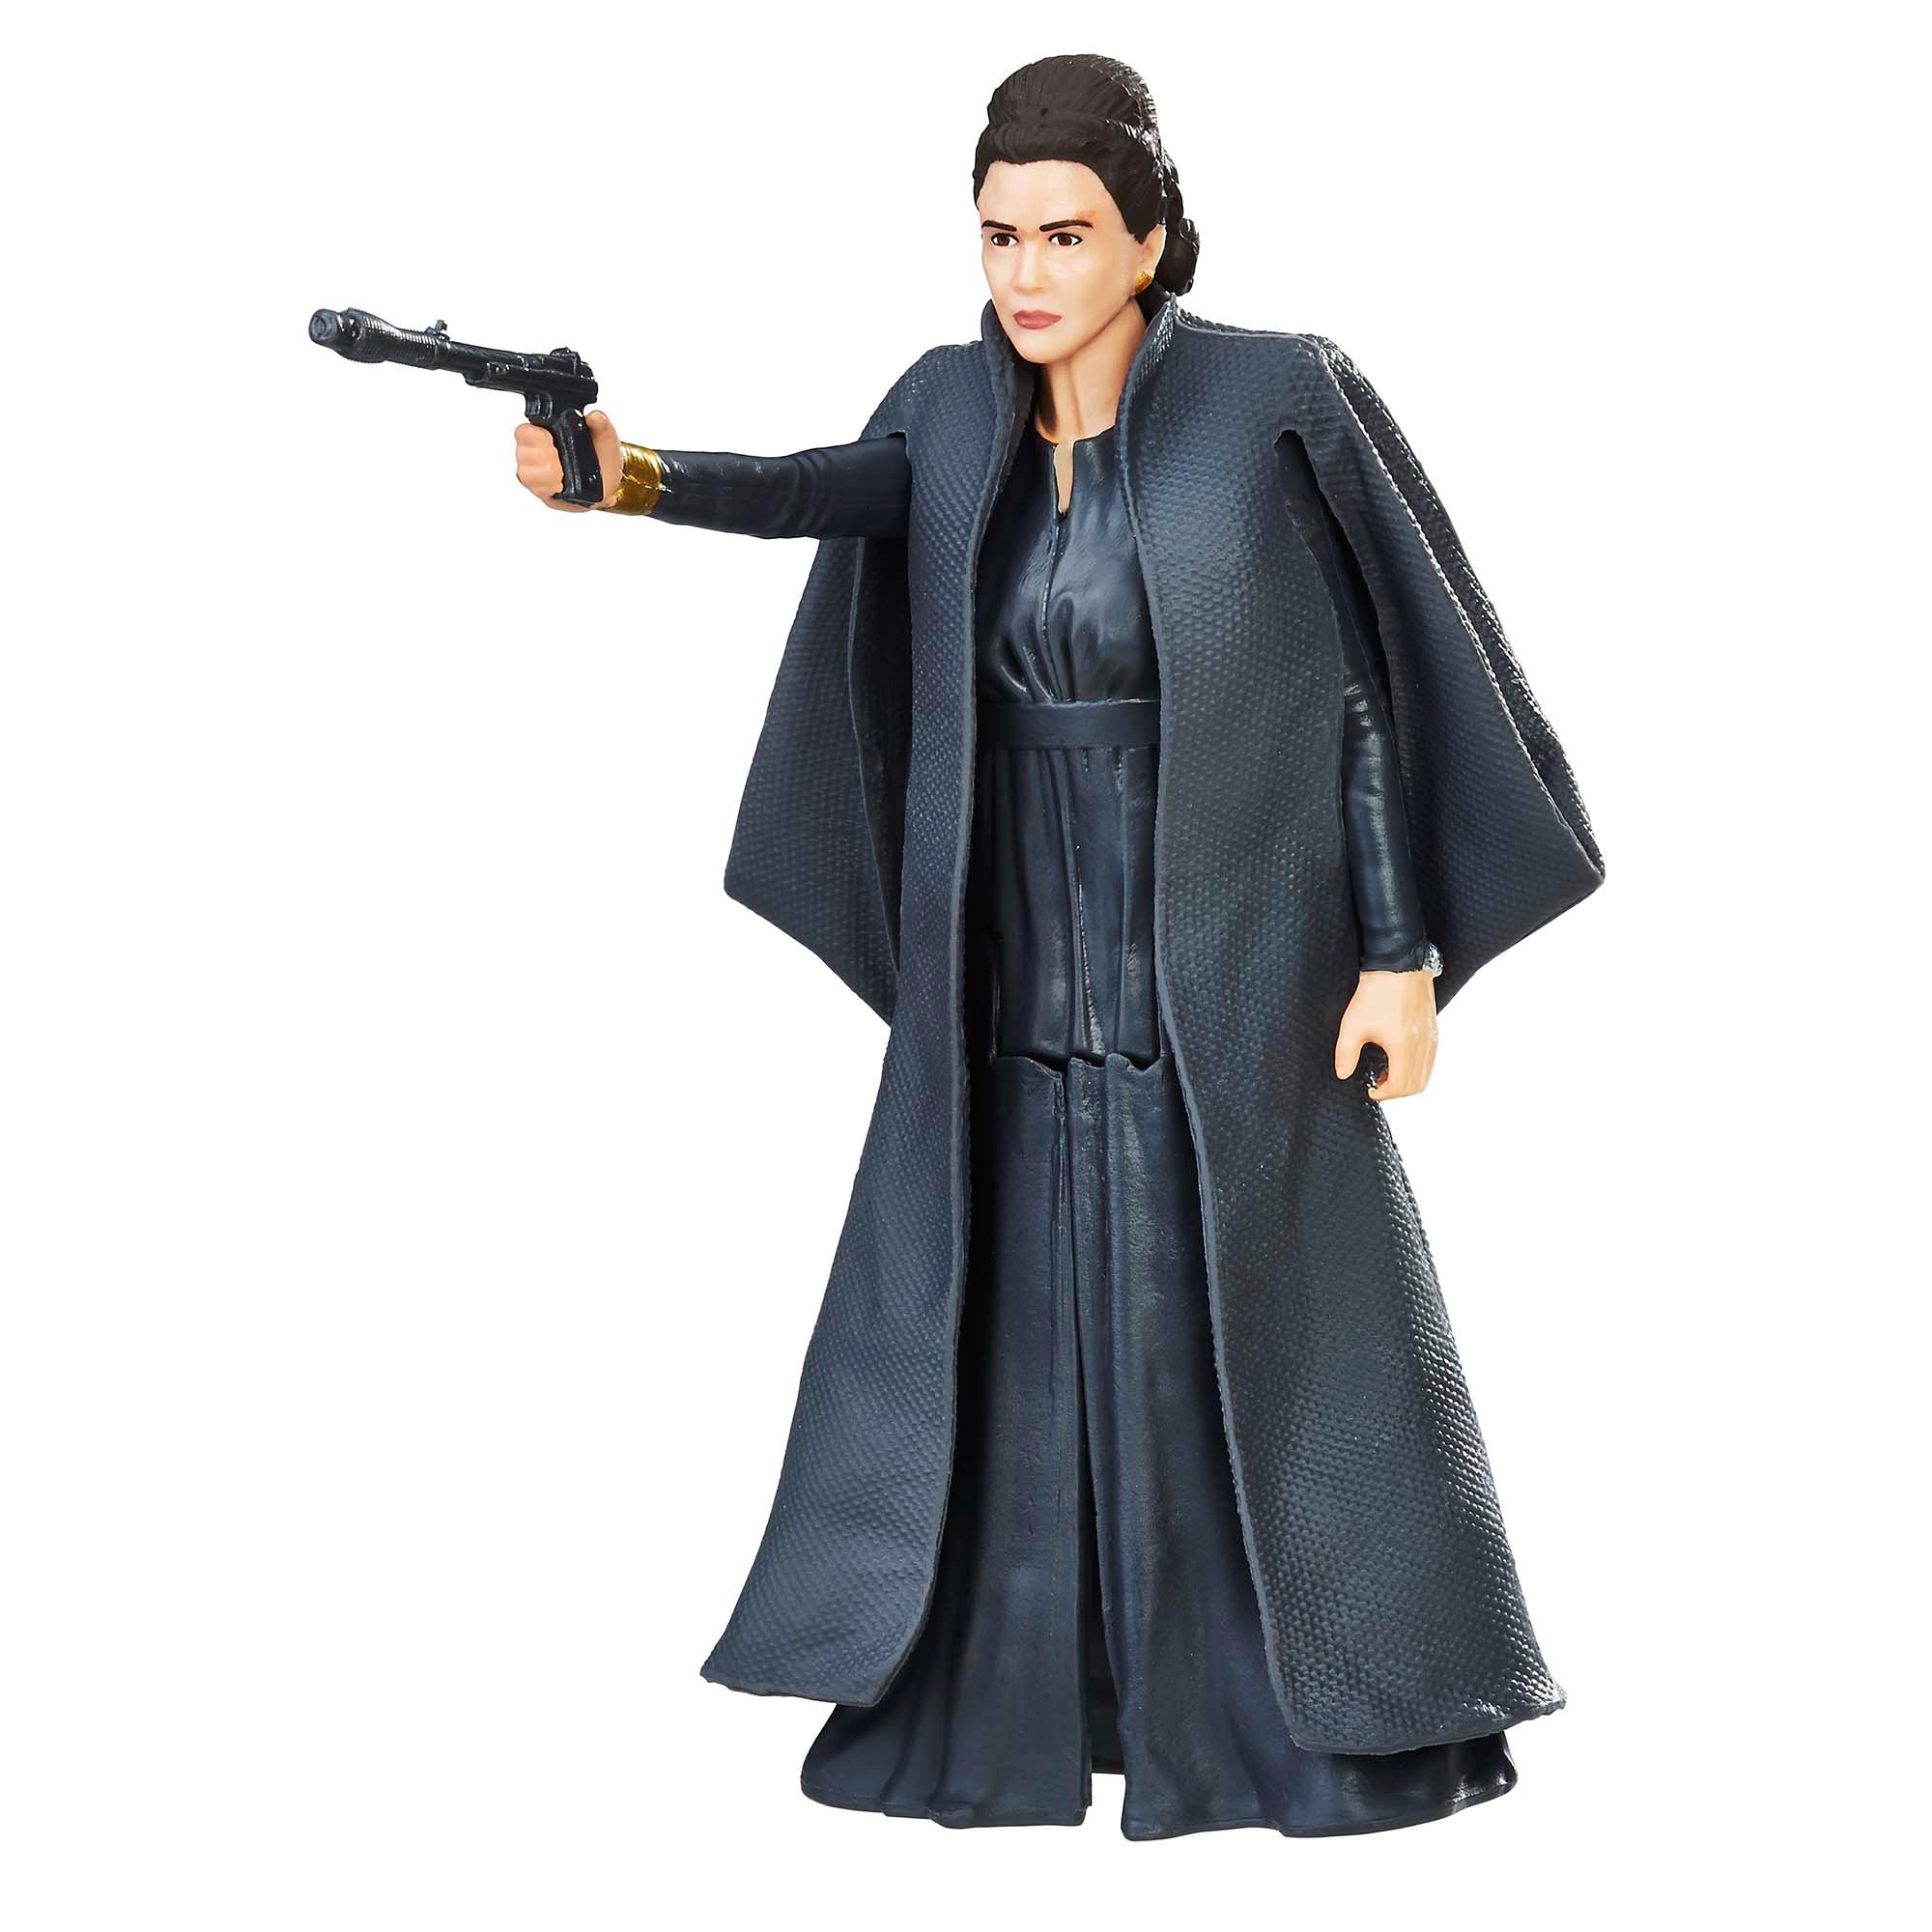 Star Wars General Leia Organa Force Link Figure